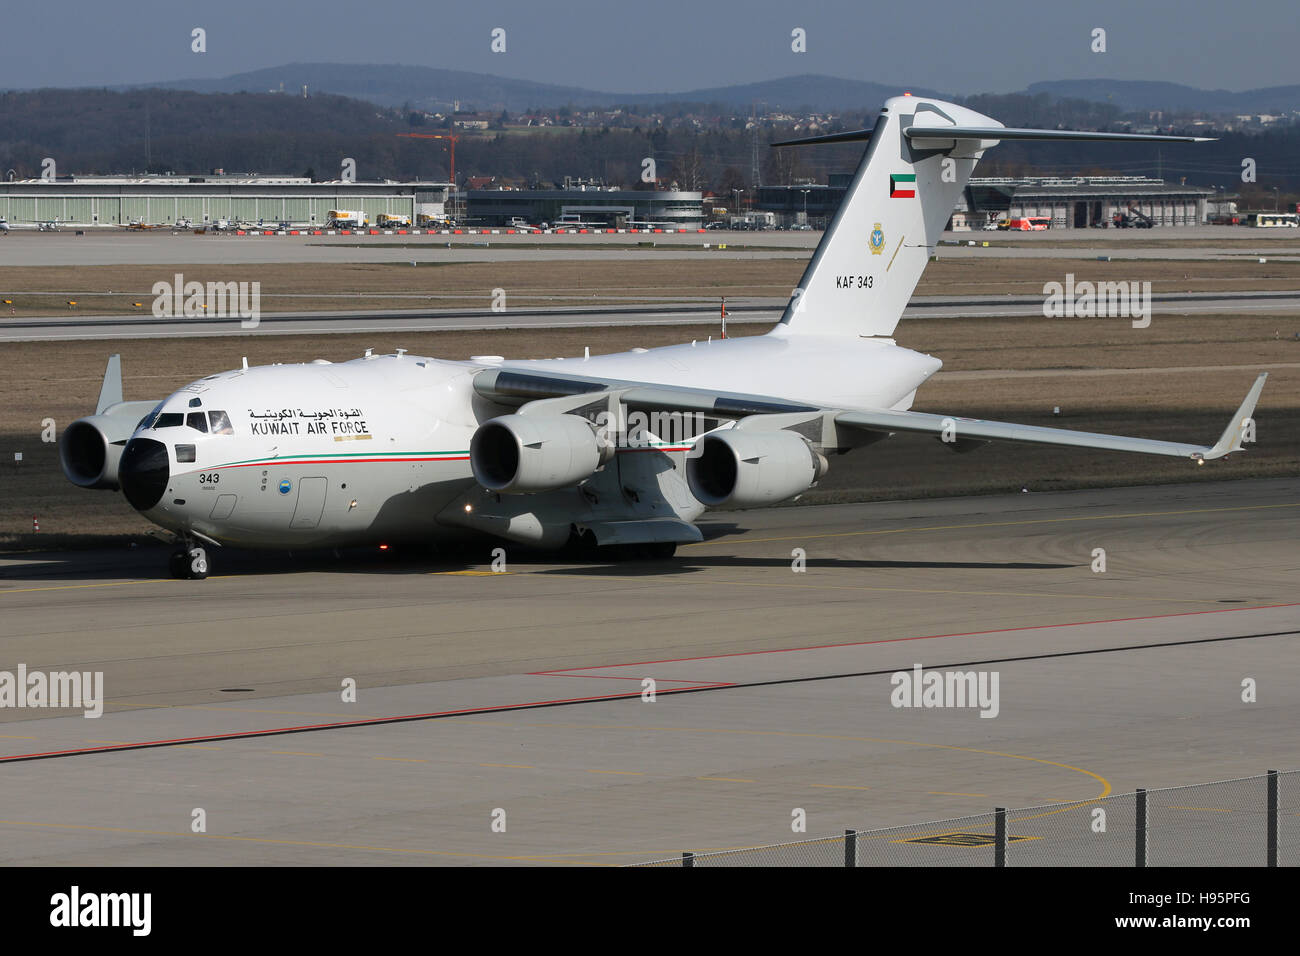 Stuttgart, Germany – March 14, 2016: Kuwait Air Force, Boeing C17 Globemaster at Stuttgart Airport - Stock Image